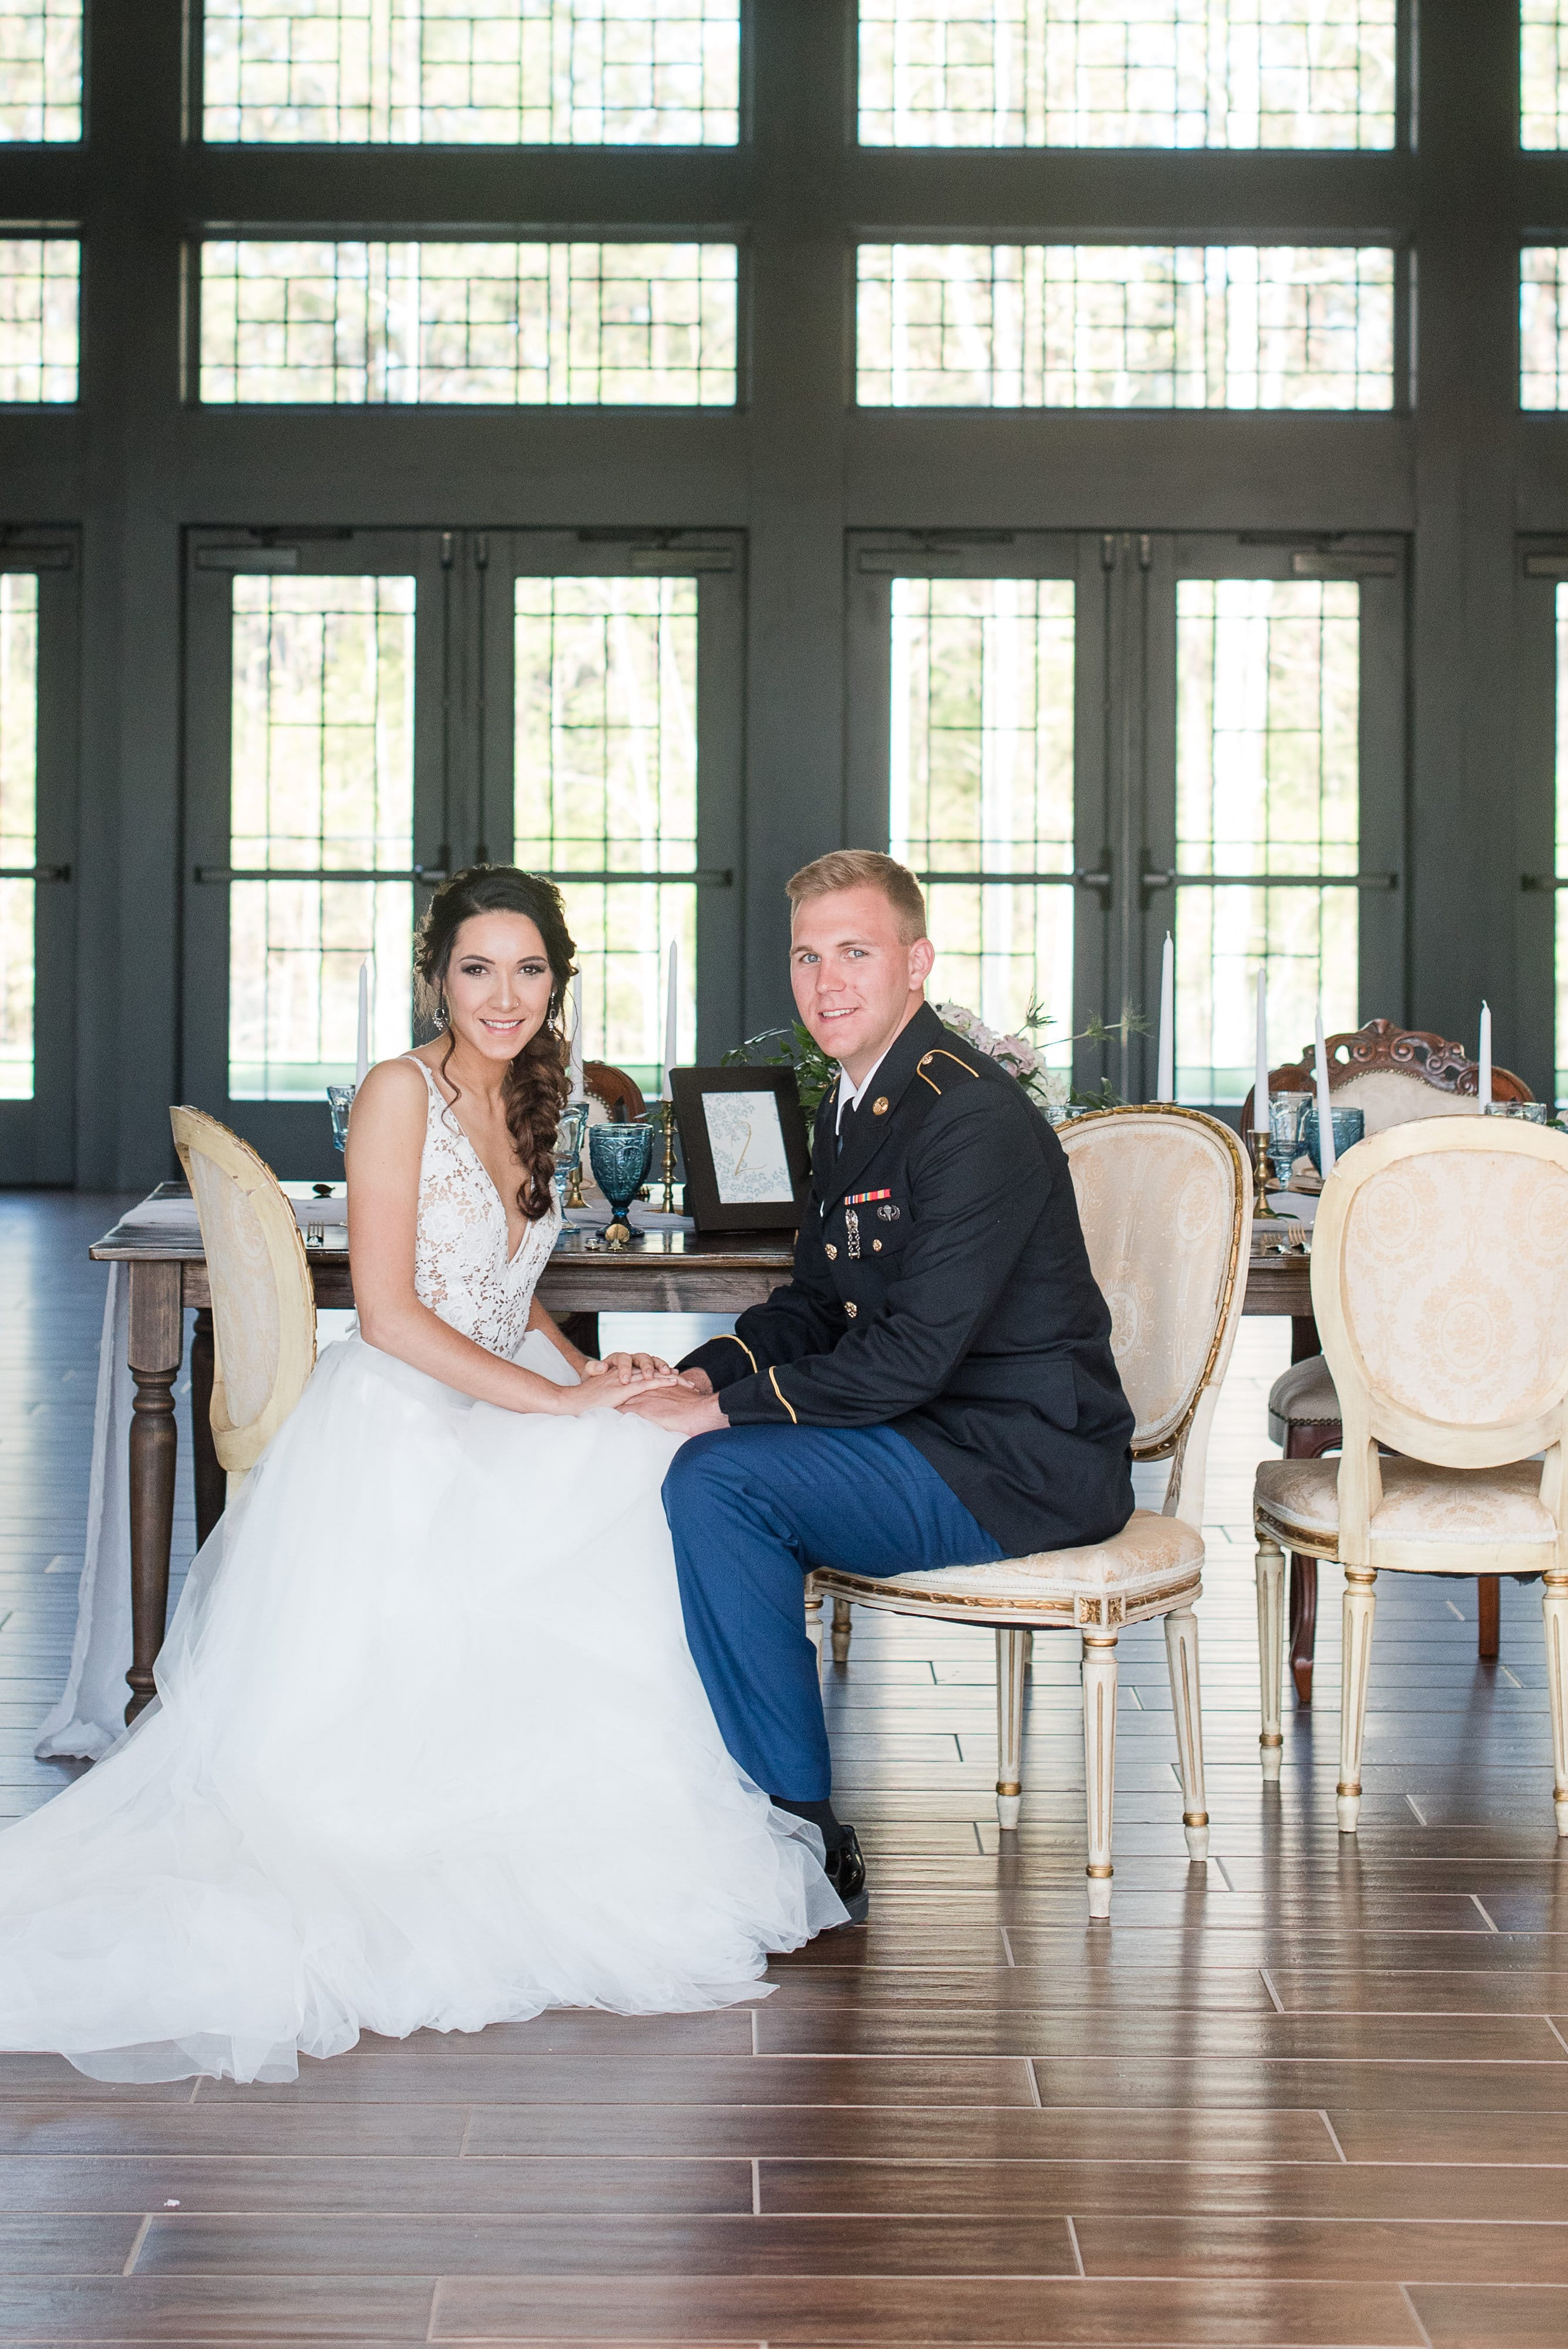 Bride and groom sit on vintage white chairs rented from Evermore Events